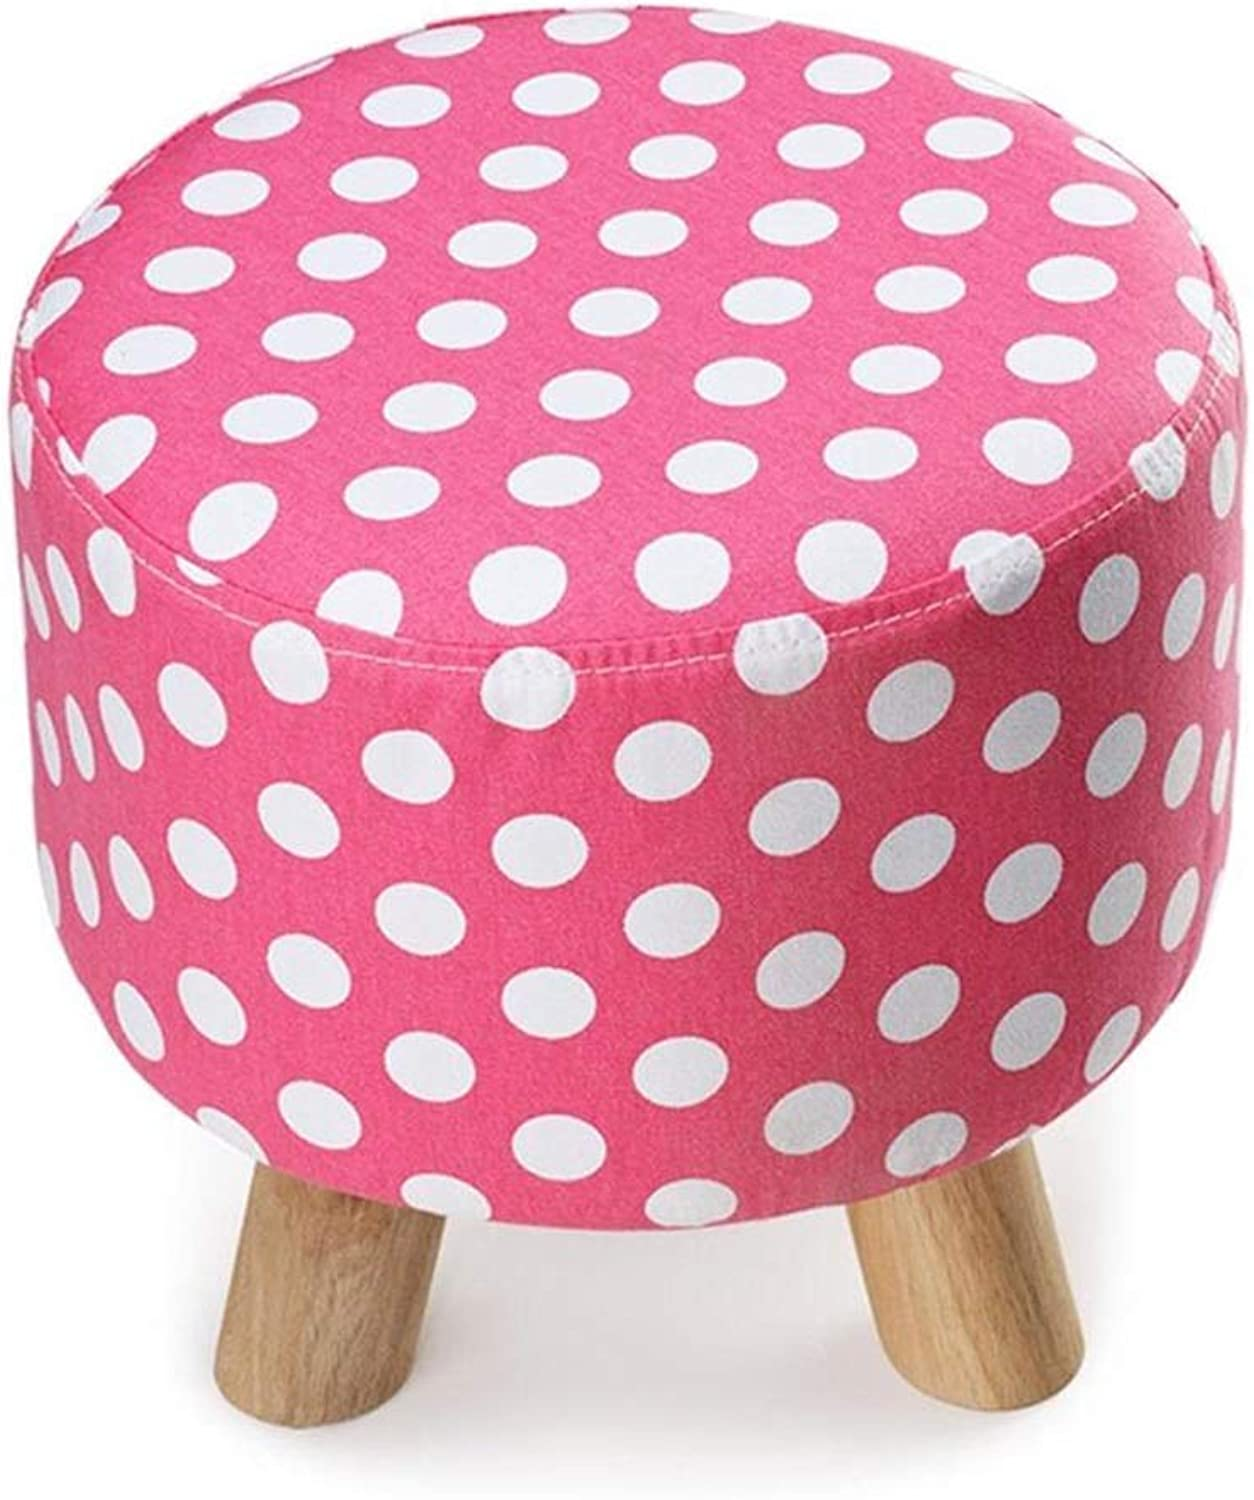 Dengzi Three-Legged Small Stool Removable and Washable shoes Stool European Fabric Sofa Bench shoes shoes Low Stool Solid Wood pier (color   Pink)